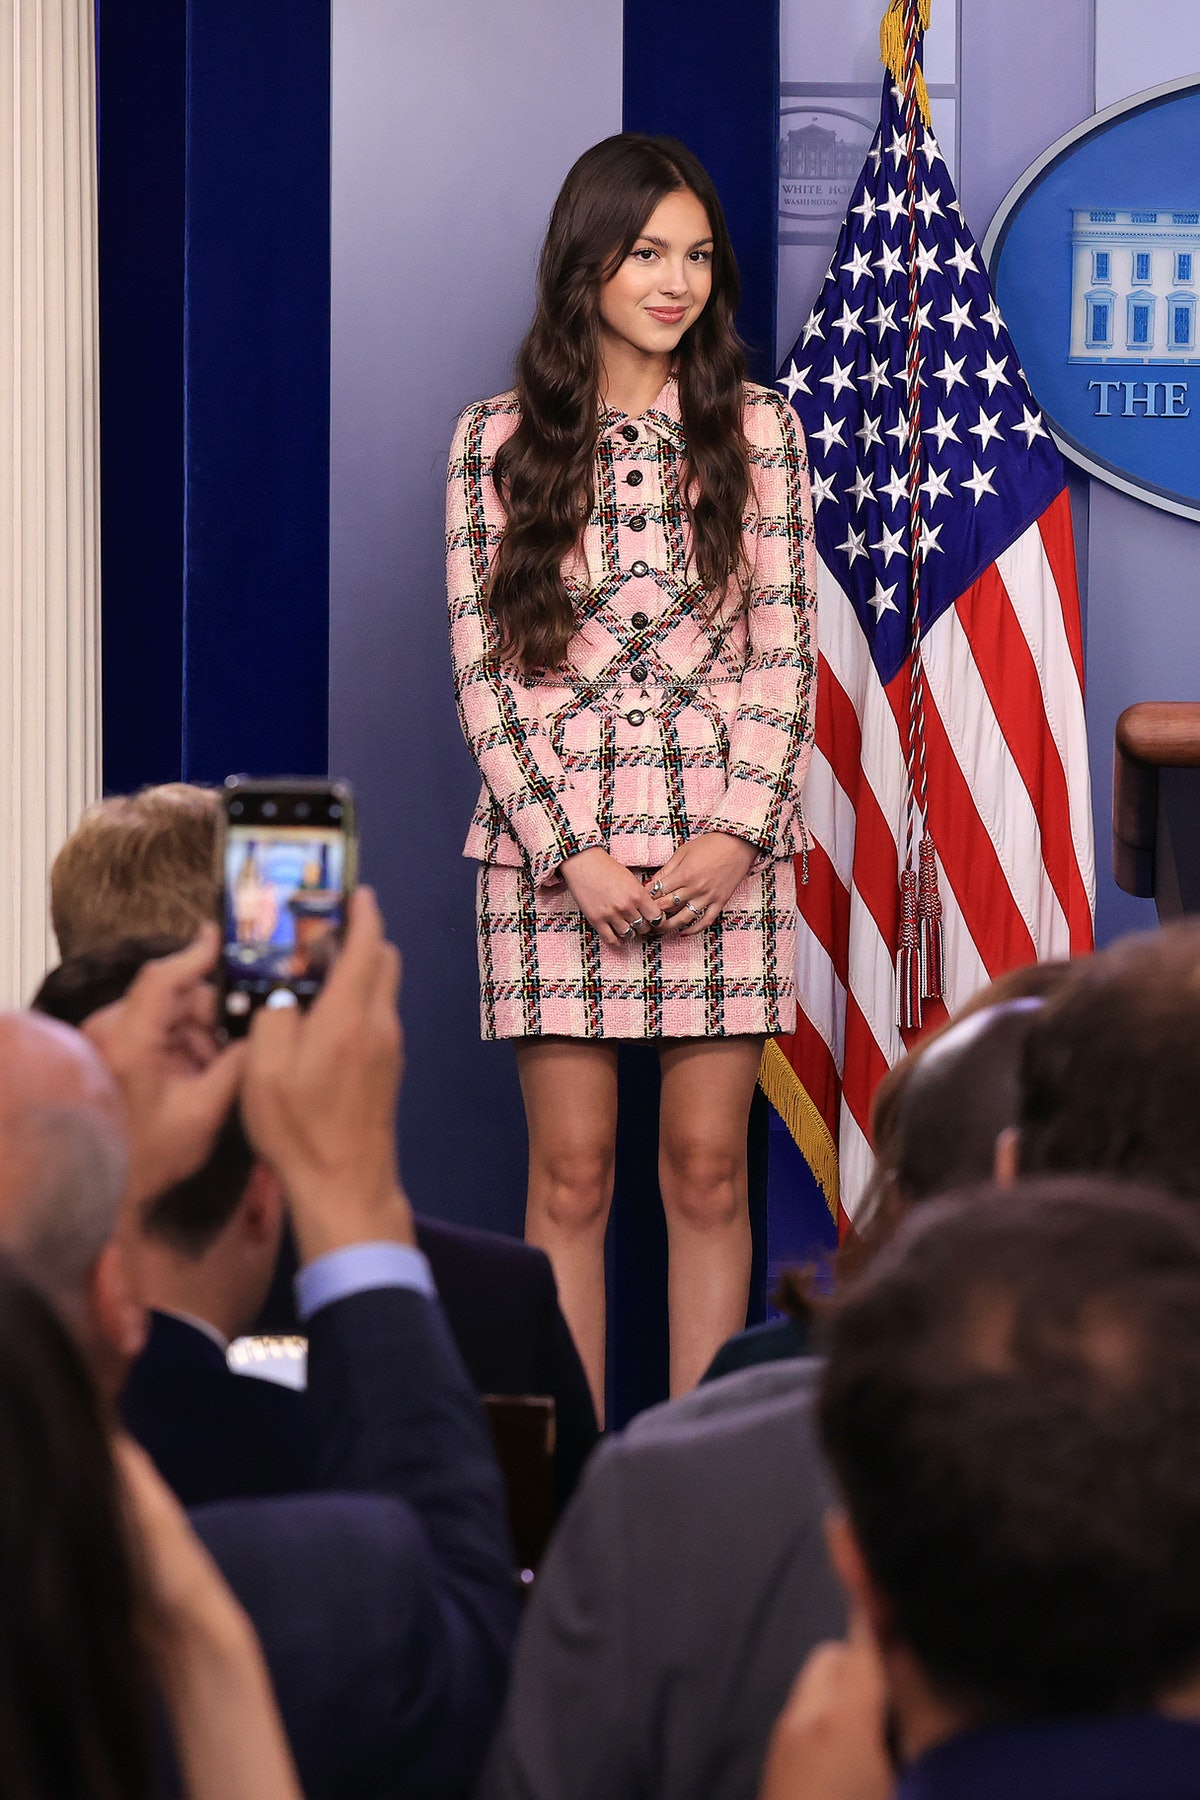 Olivia Rodrigo's pink, plaid Chanel tweed suit is an example of preppy Y2K fashion returning in 2021...